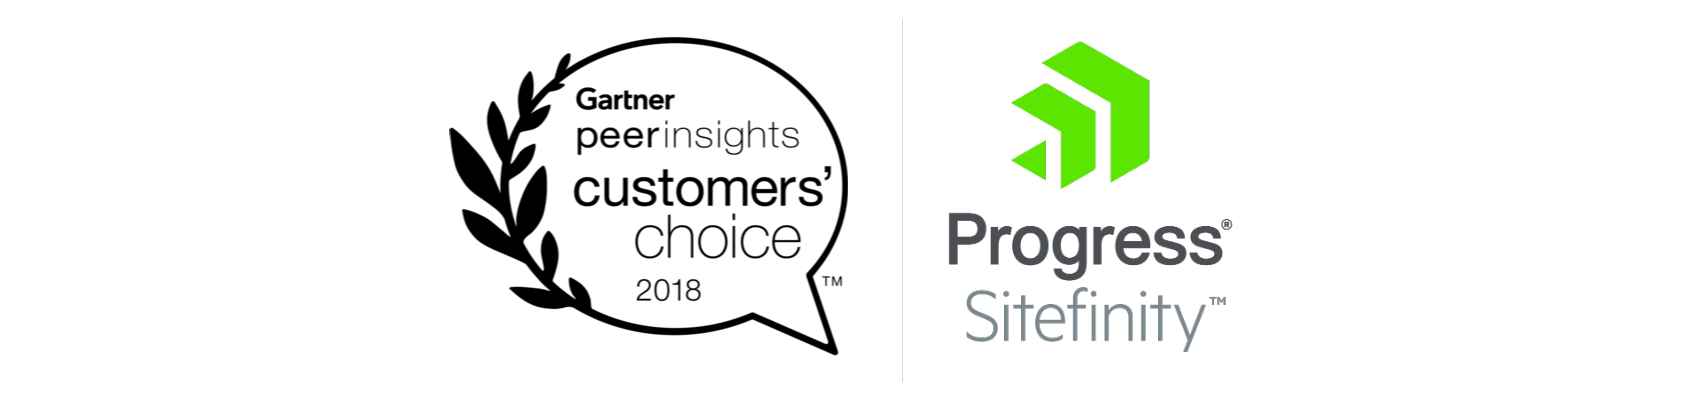 Sitefinity Gartner Peer Insights